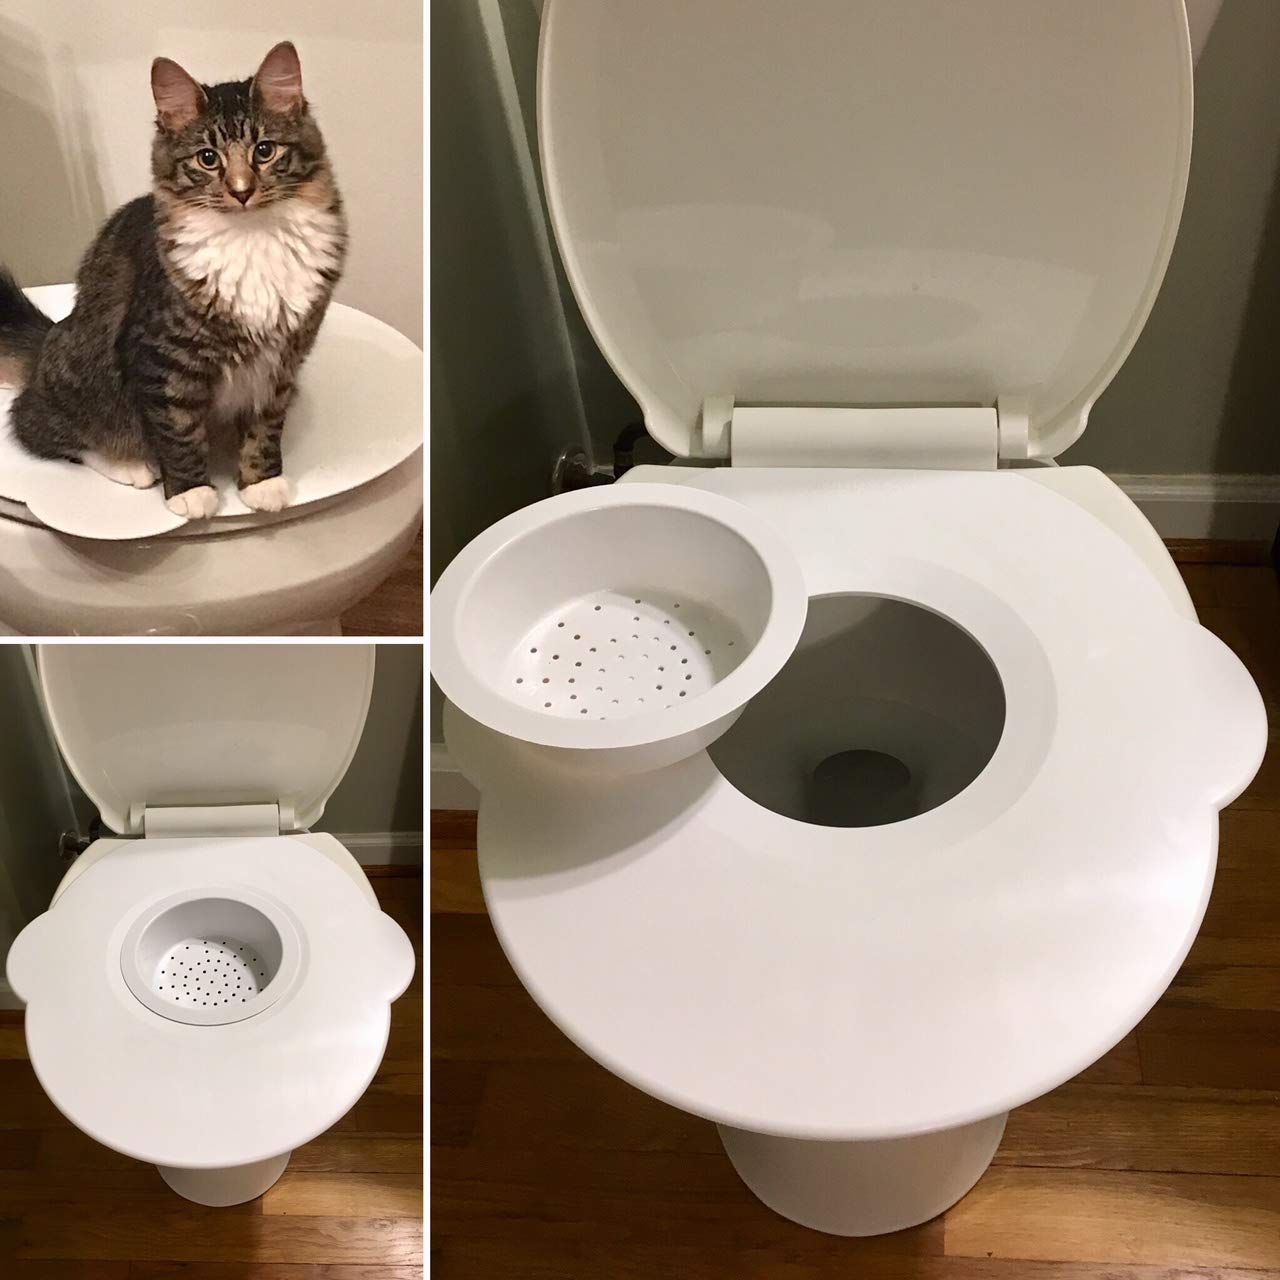 Kitty's Loo - The Best Cat Toilet Seat - Cat Toilet Training Kit by Kitty's Loo